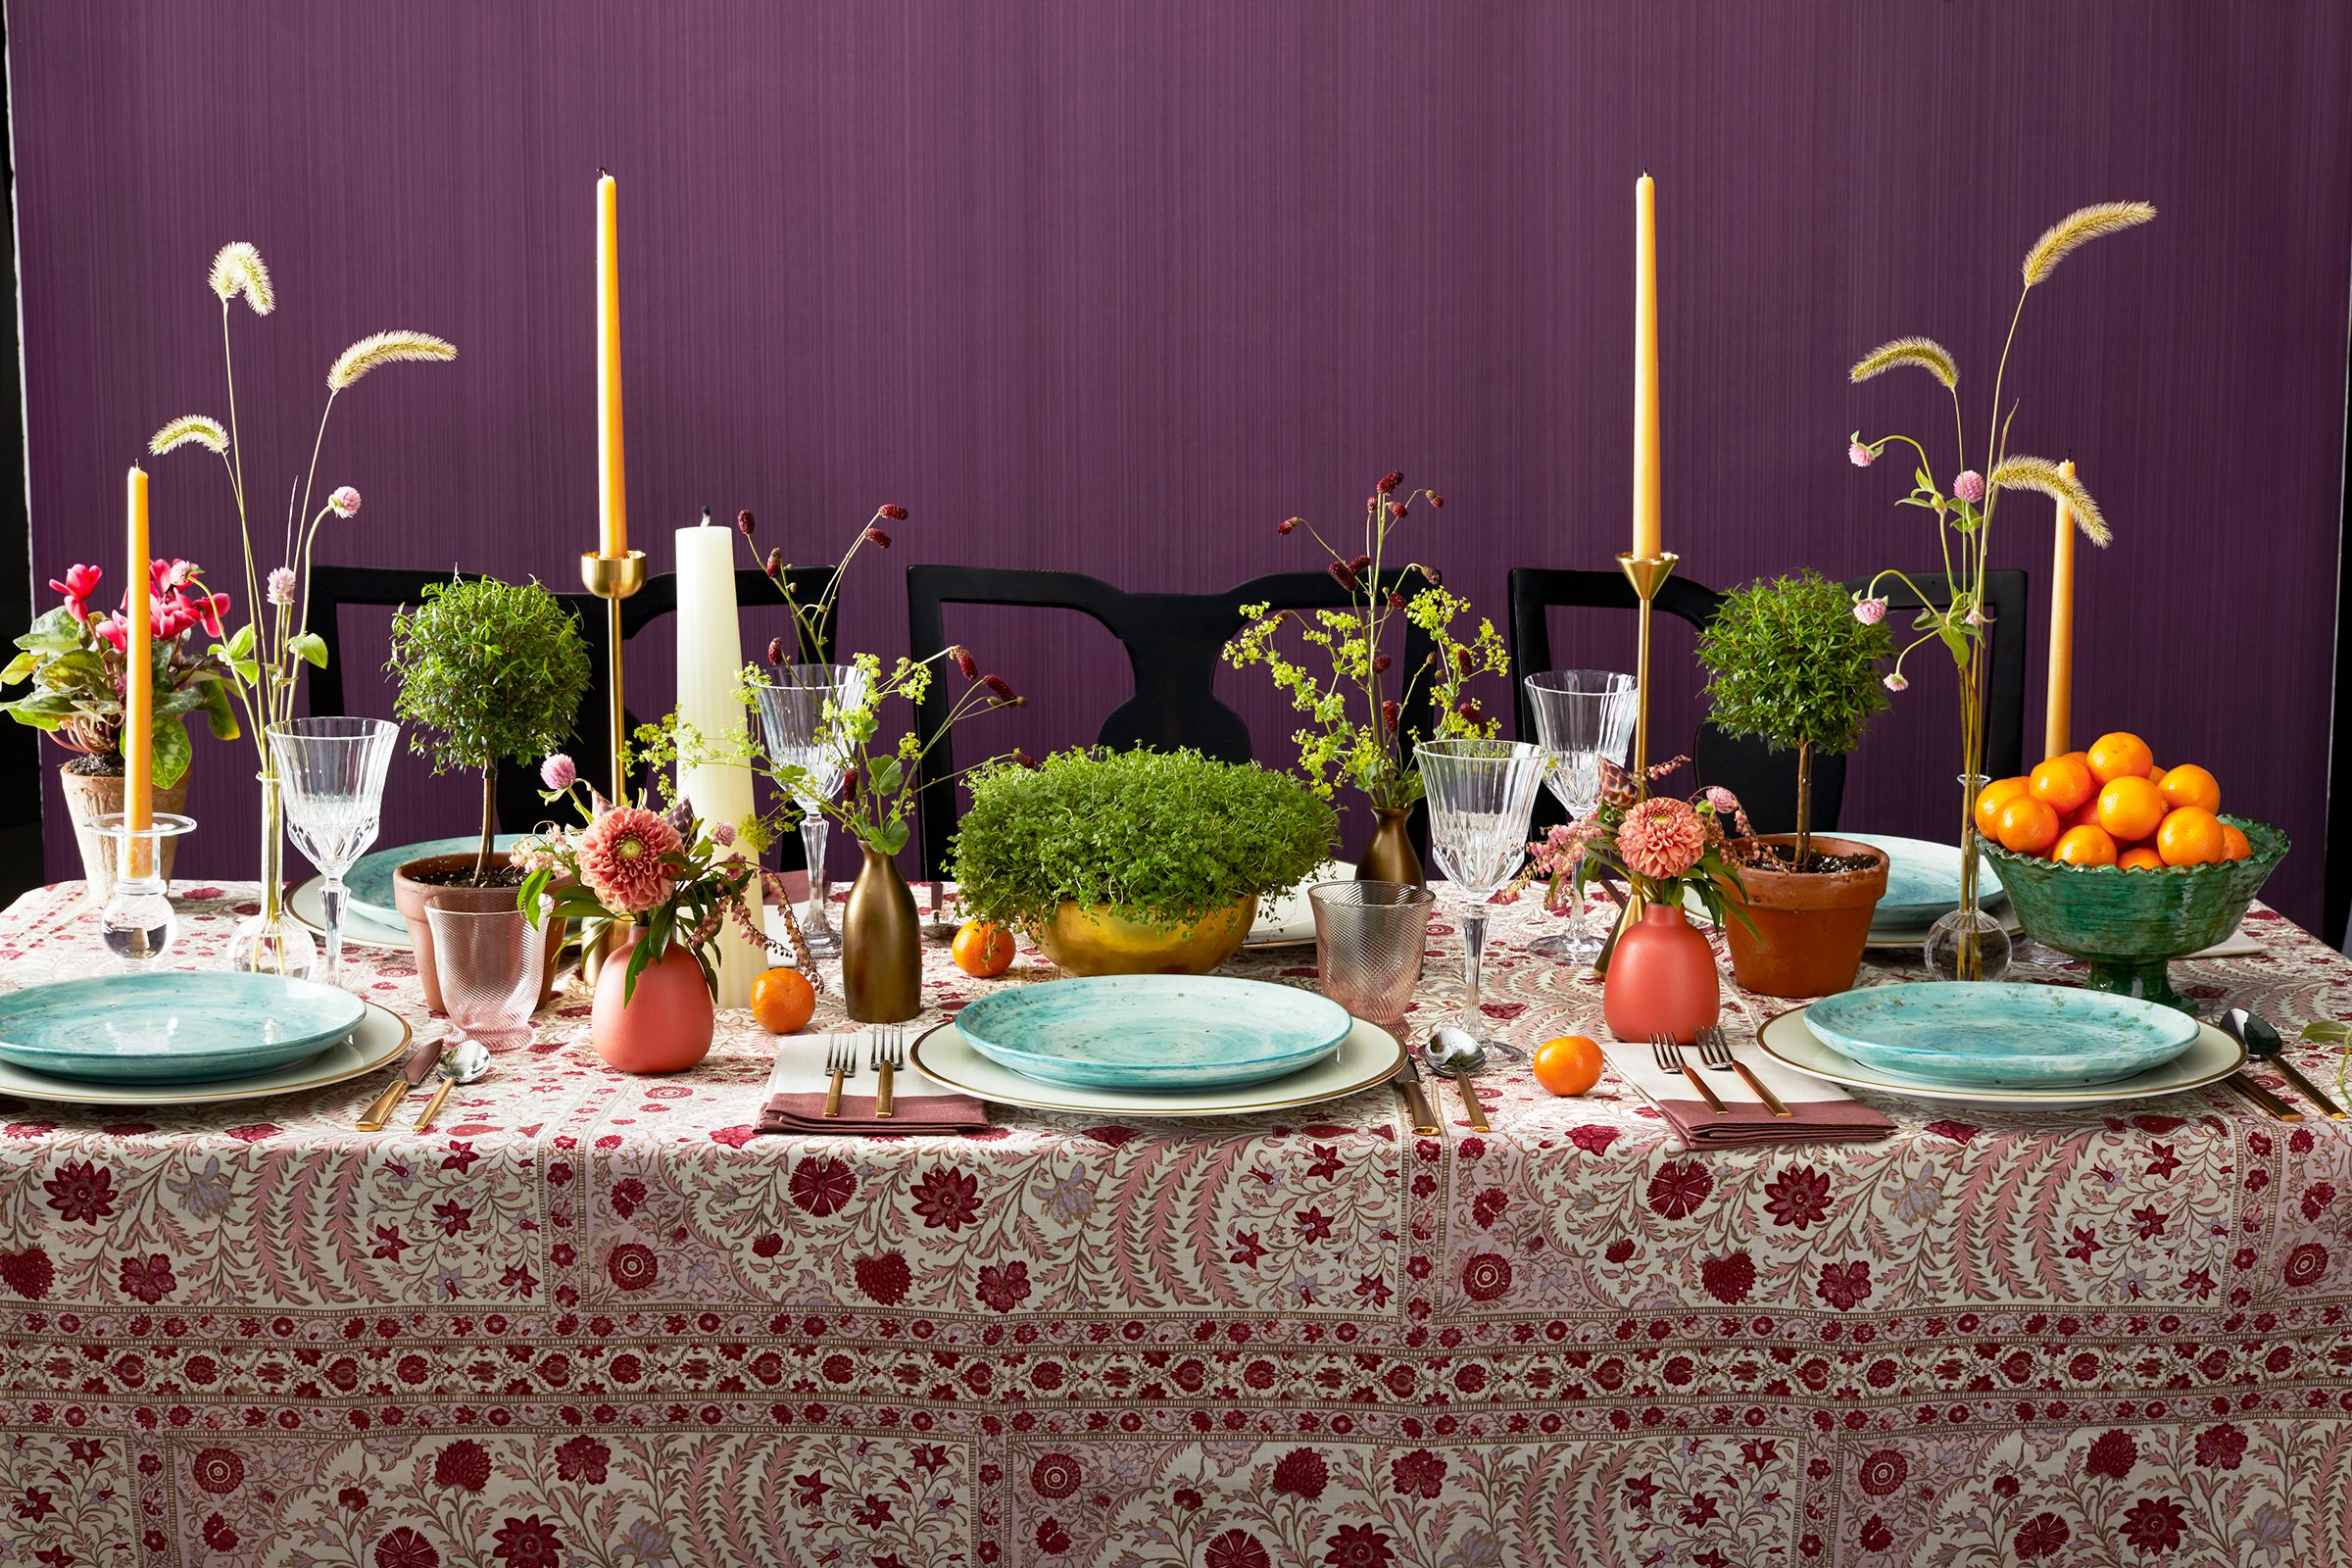 35 Fall Table Decorations Ideas For Autumn Tablescape And